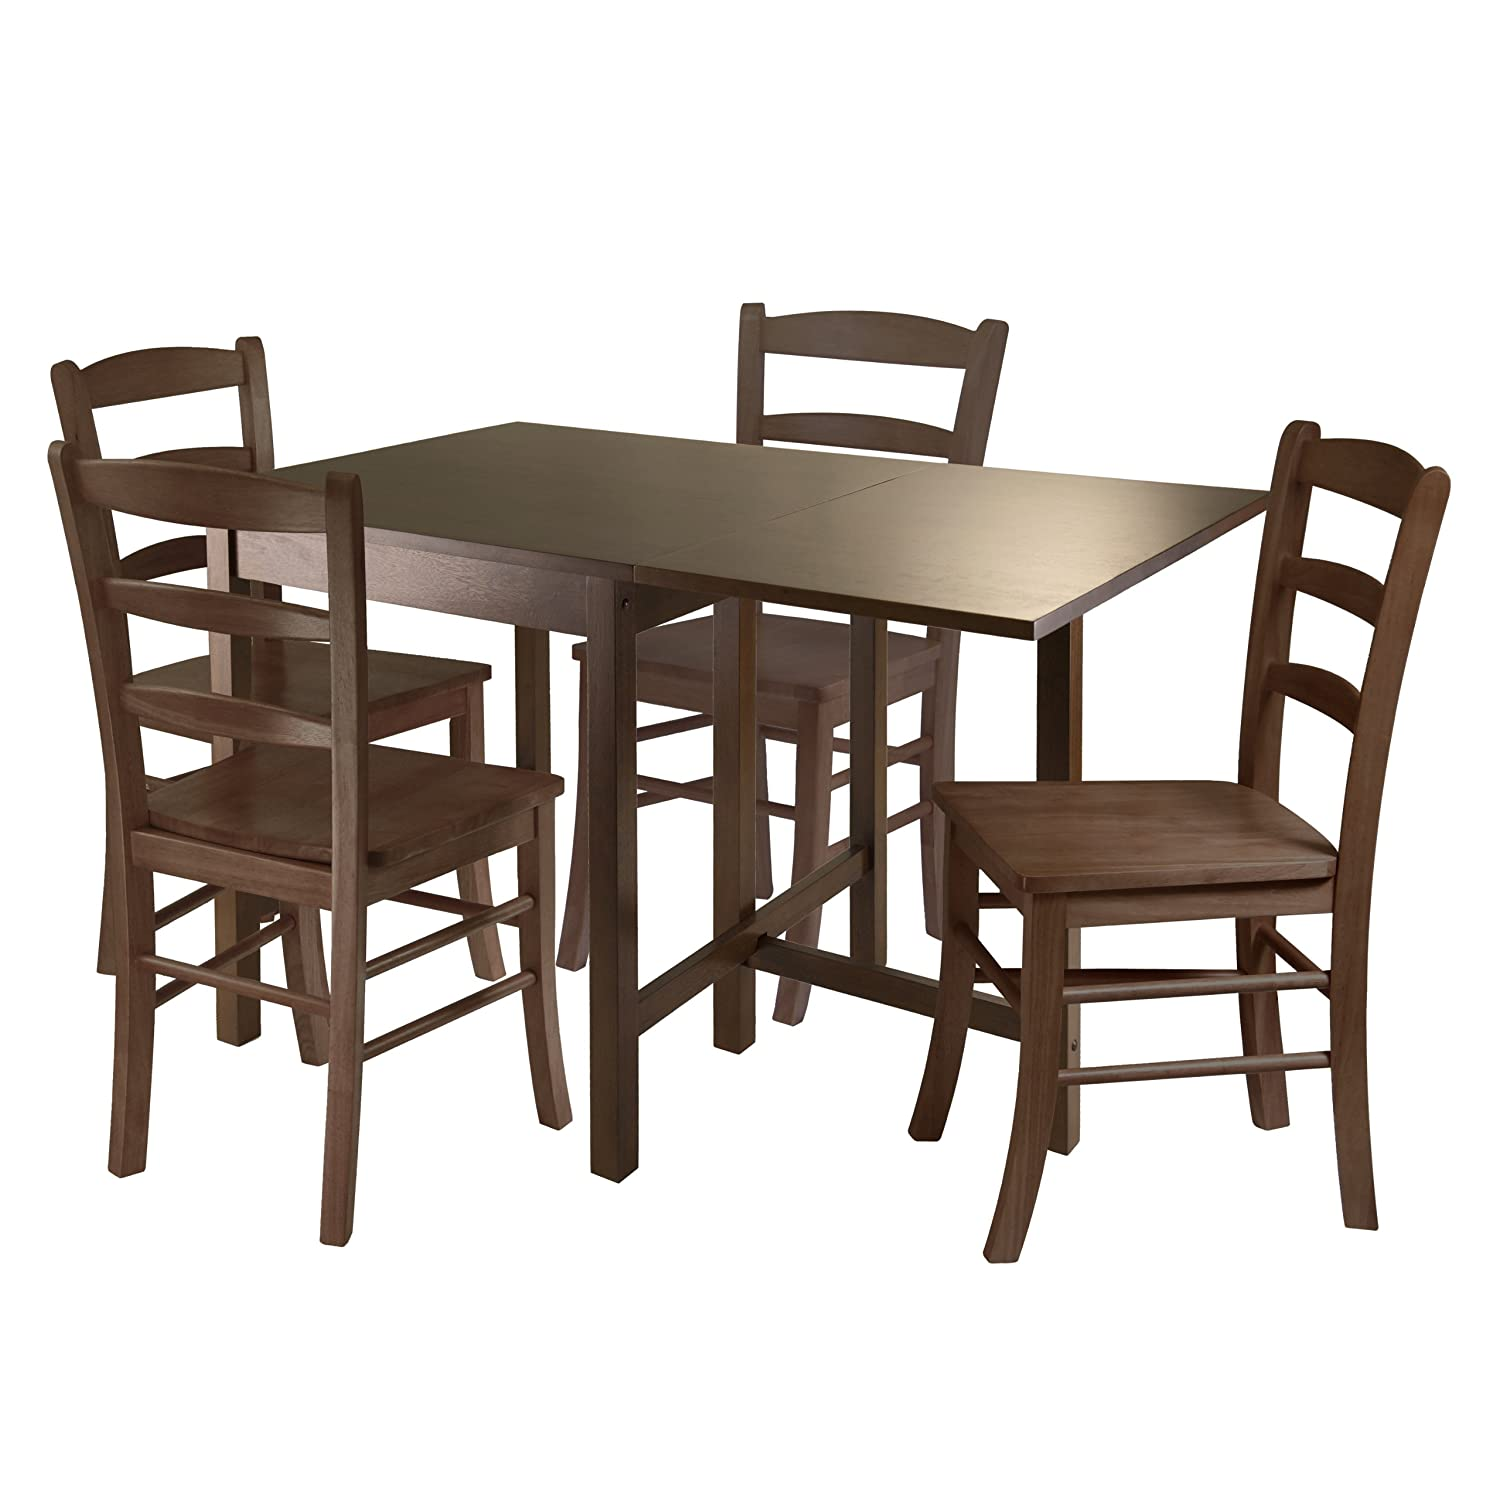 Amazon Winsome Lynden 3 Piece Dining Table with 2 Ladder